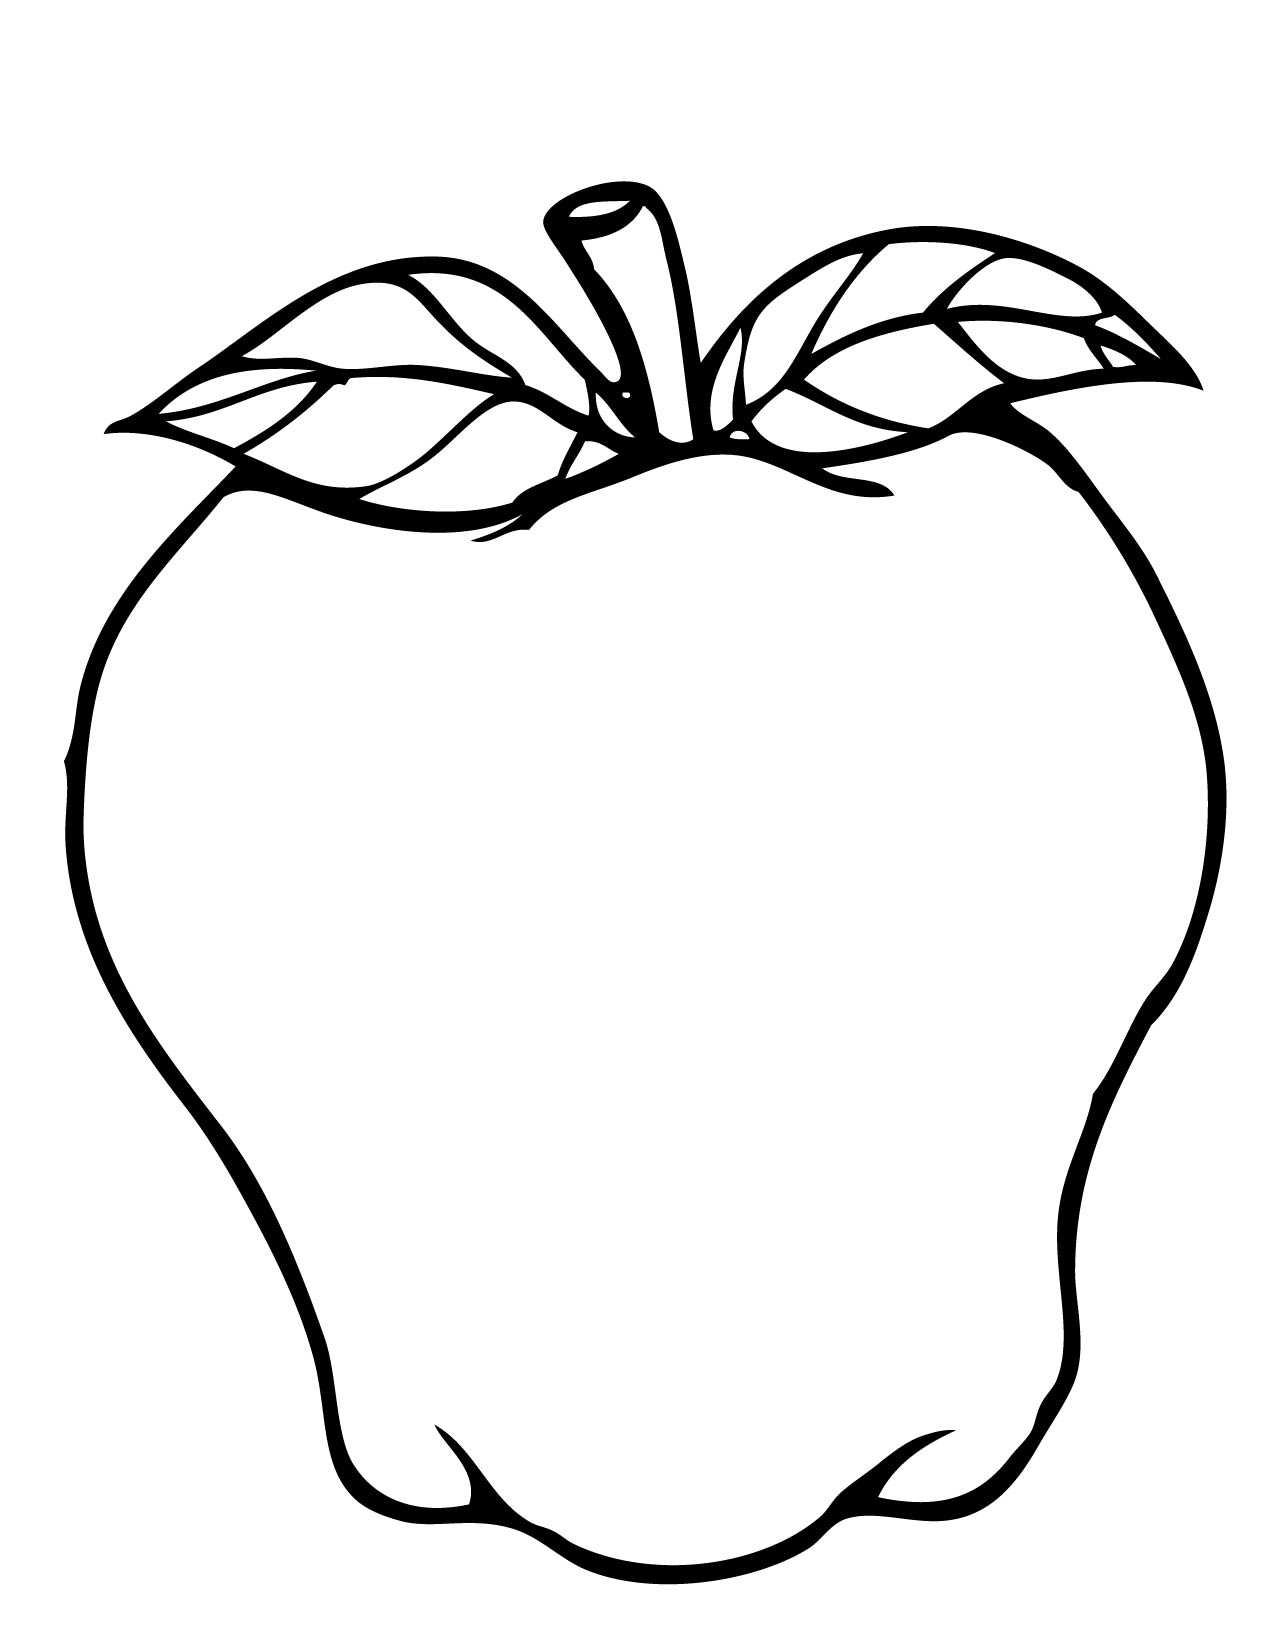 coloring page of an apple apple coloring page wecoloring coloring an of apple page